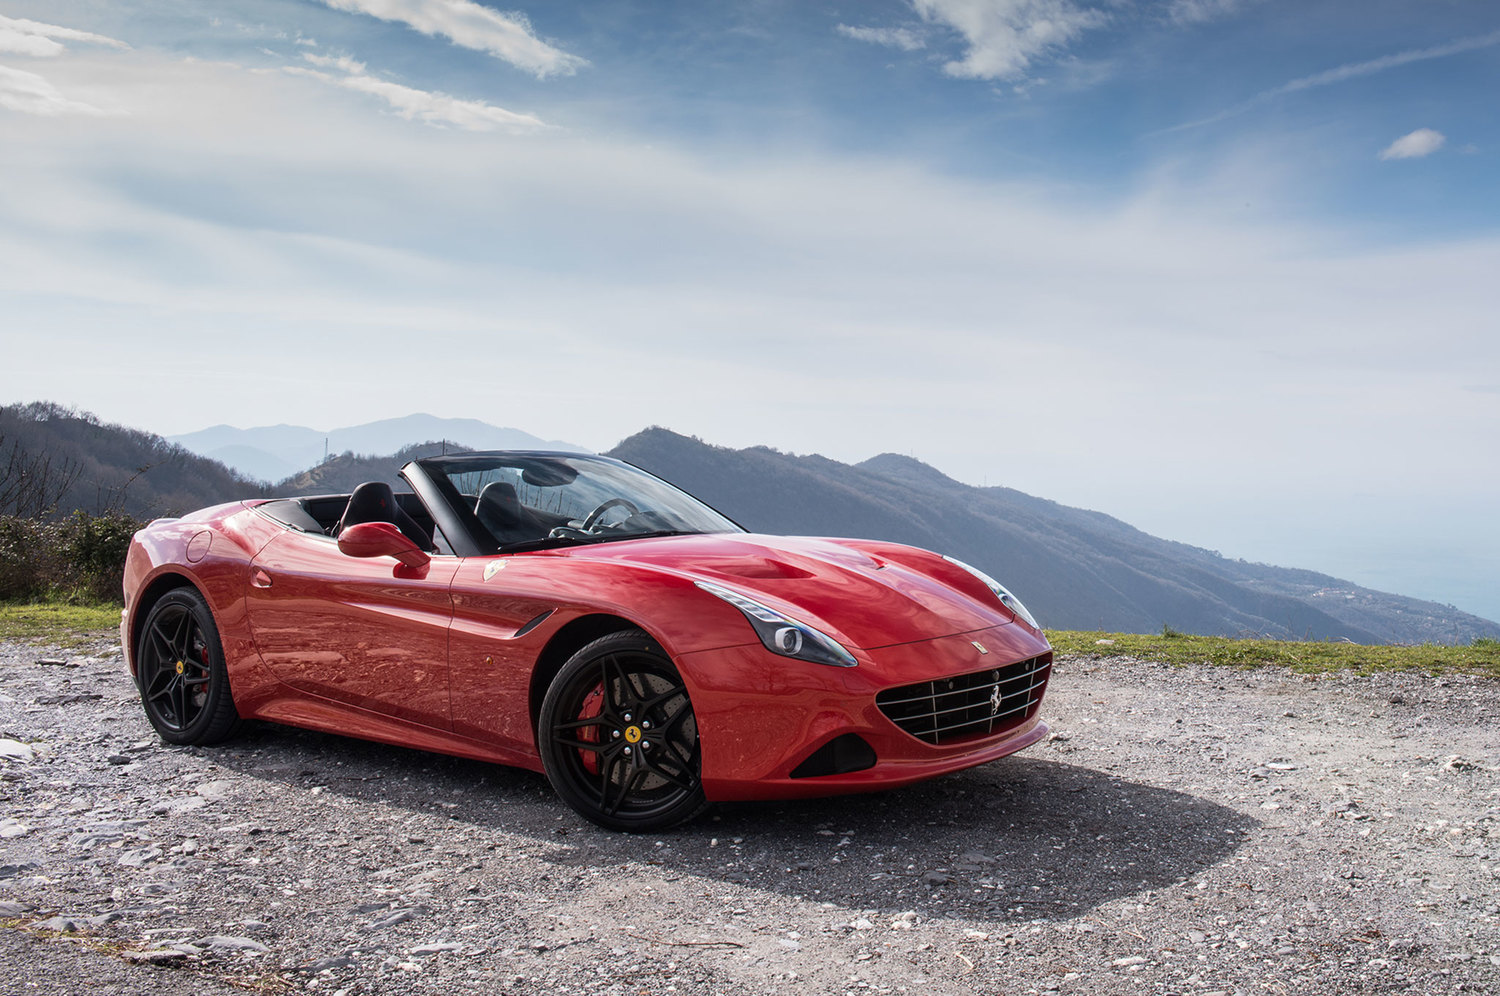 for rental up porsche revs in relatively fees hertz exotic car the as common vehicle per articles news power report cars j a such ferrari dream range day d service according boxster from autoweek to renters